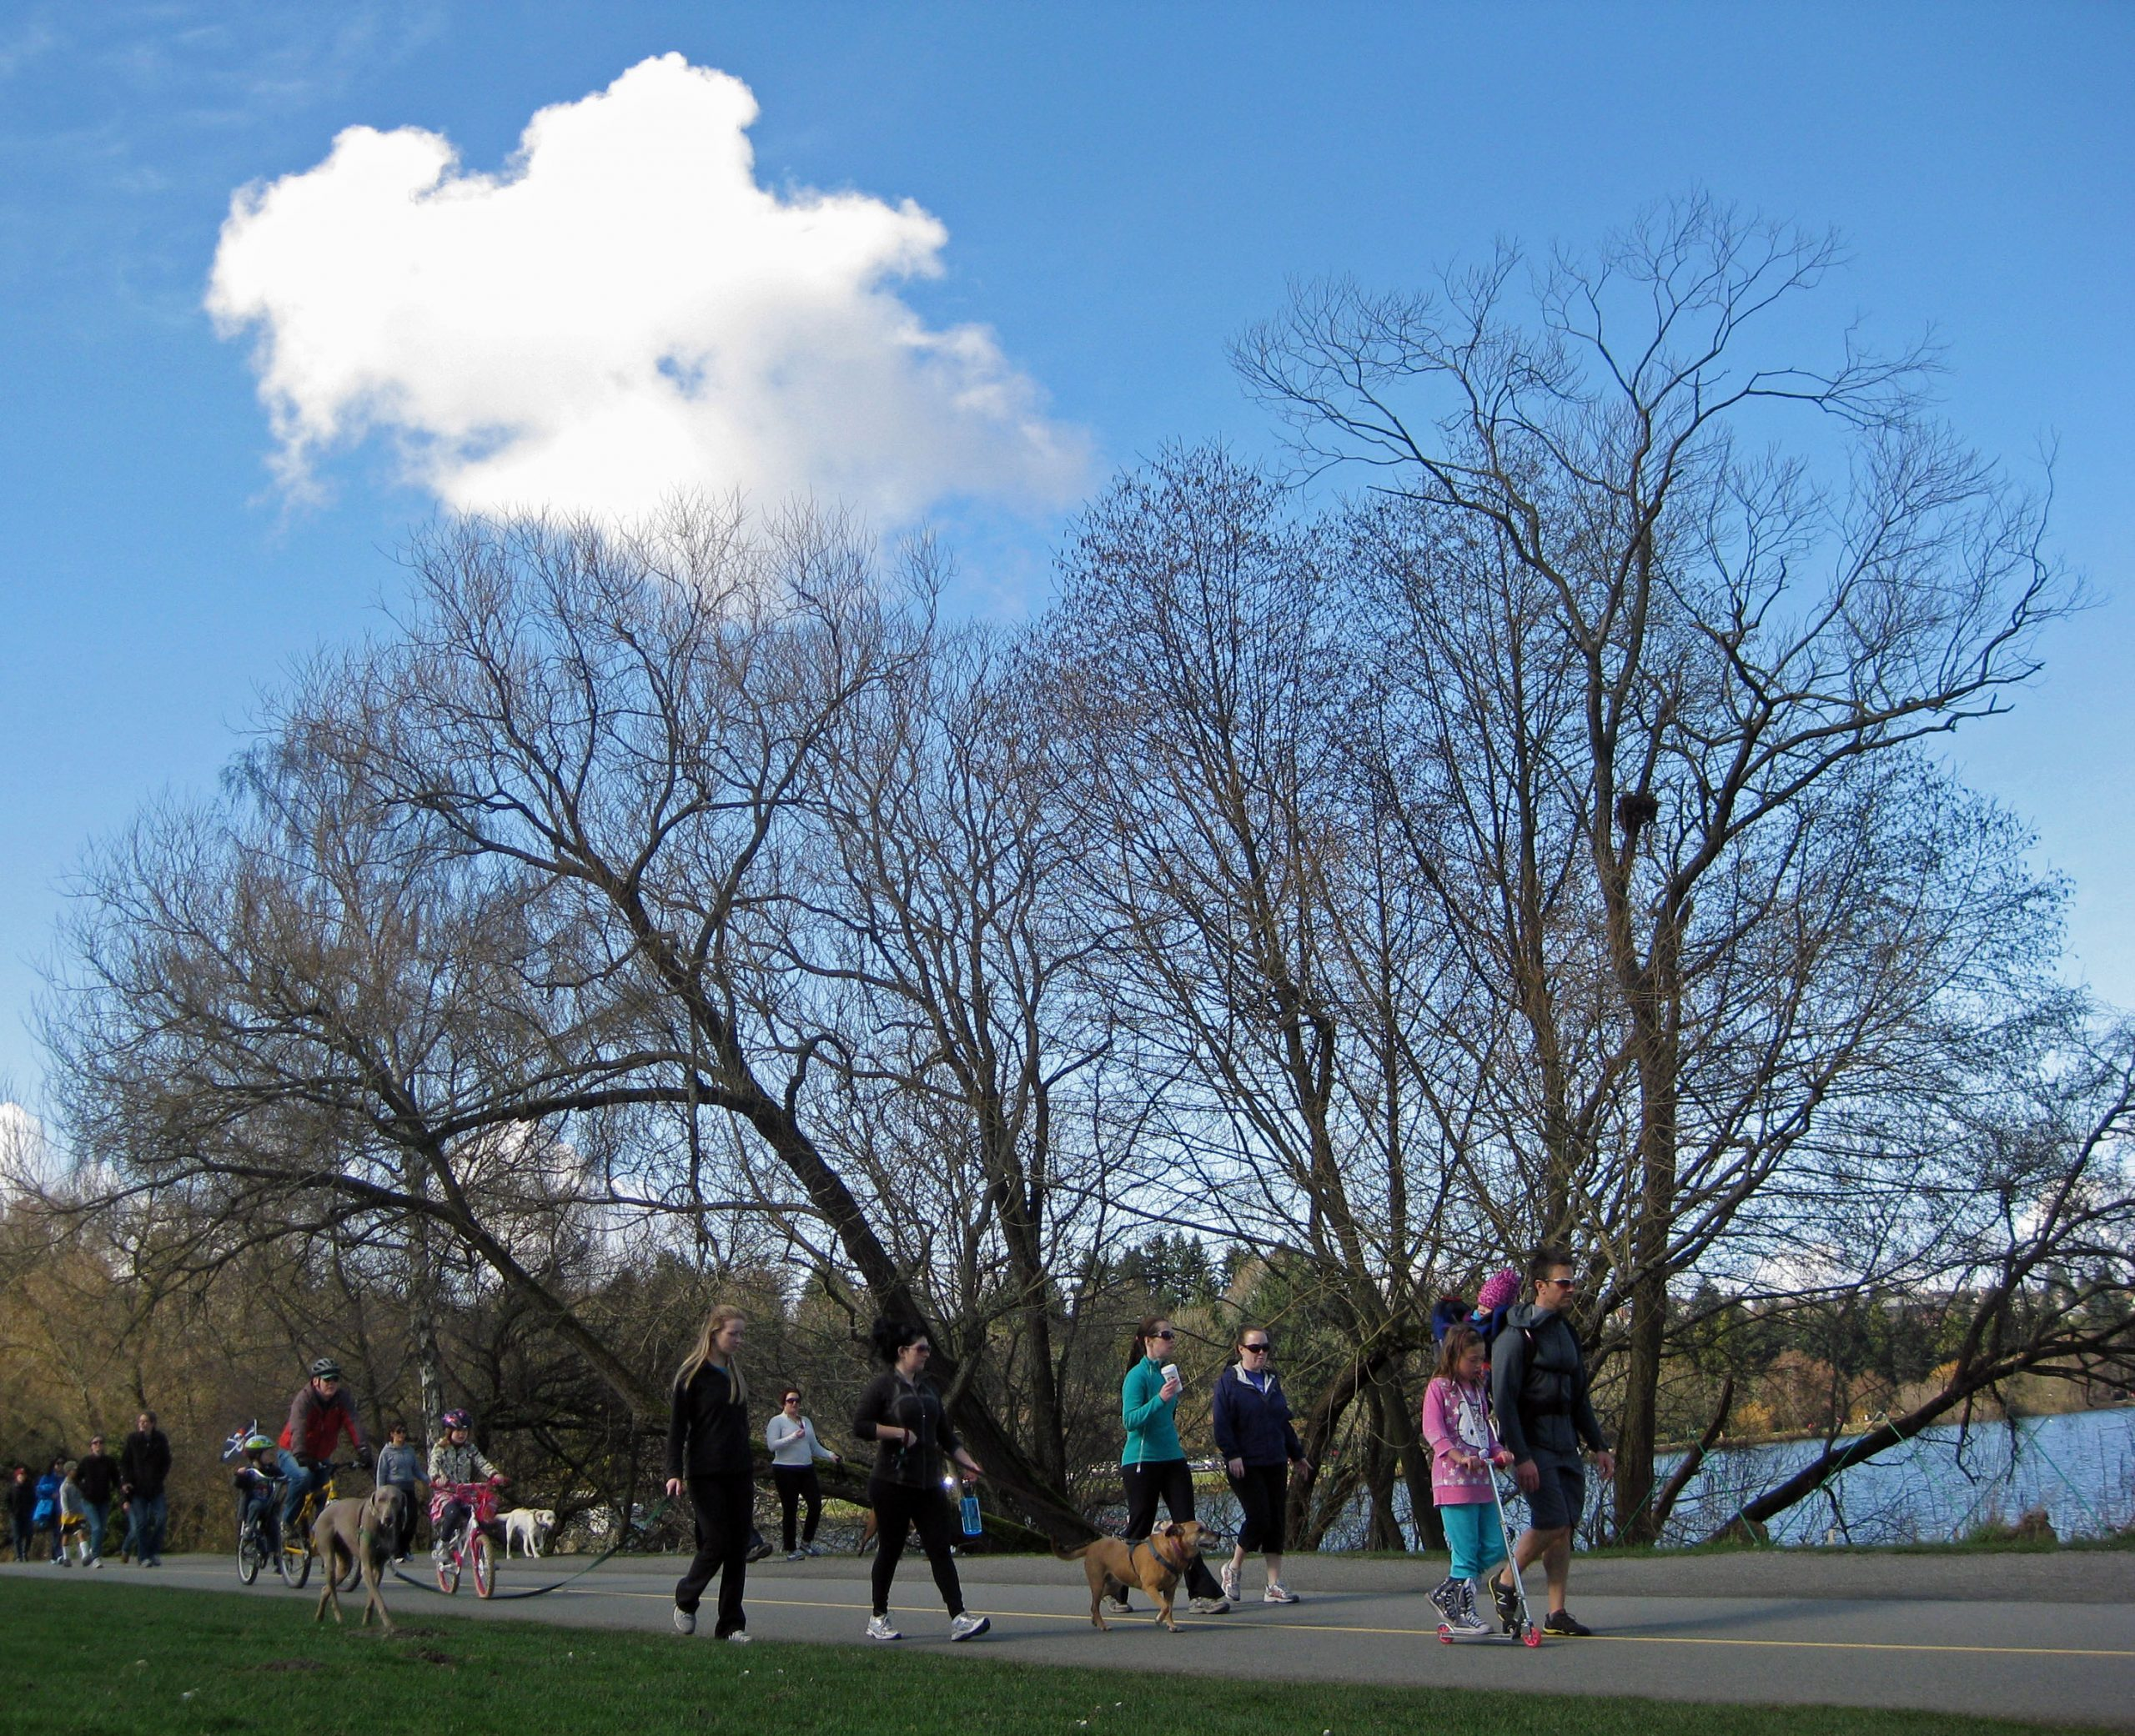 A lone cloud in the crowd at Green Lake. (March 3, 2013)